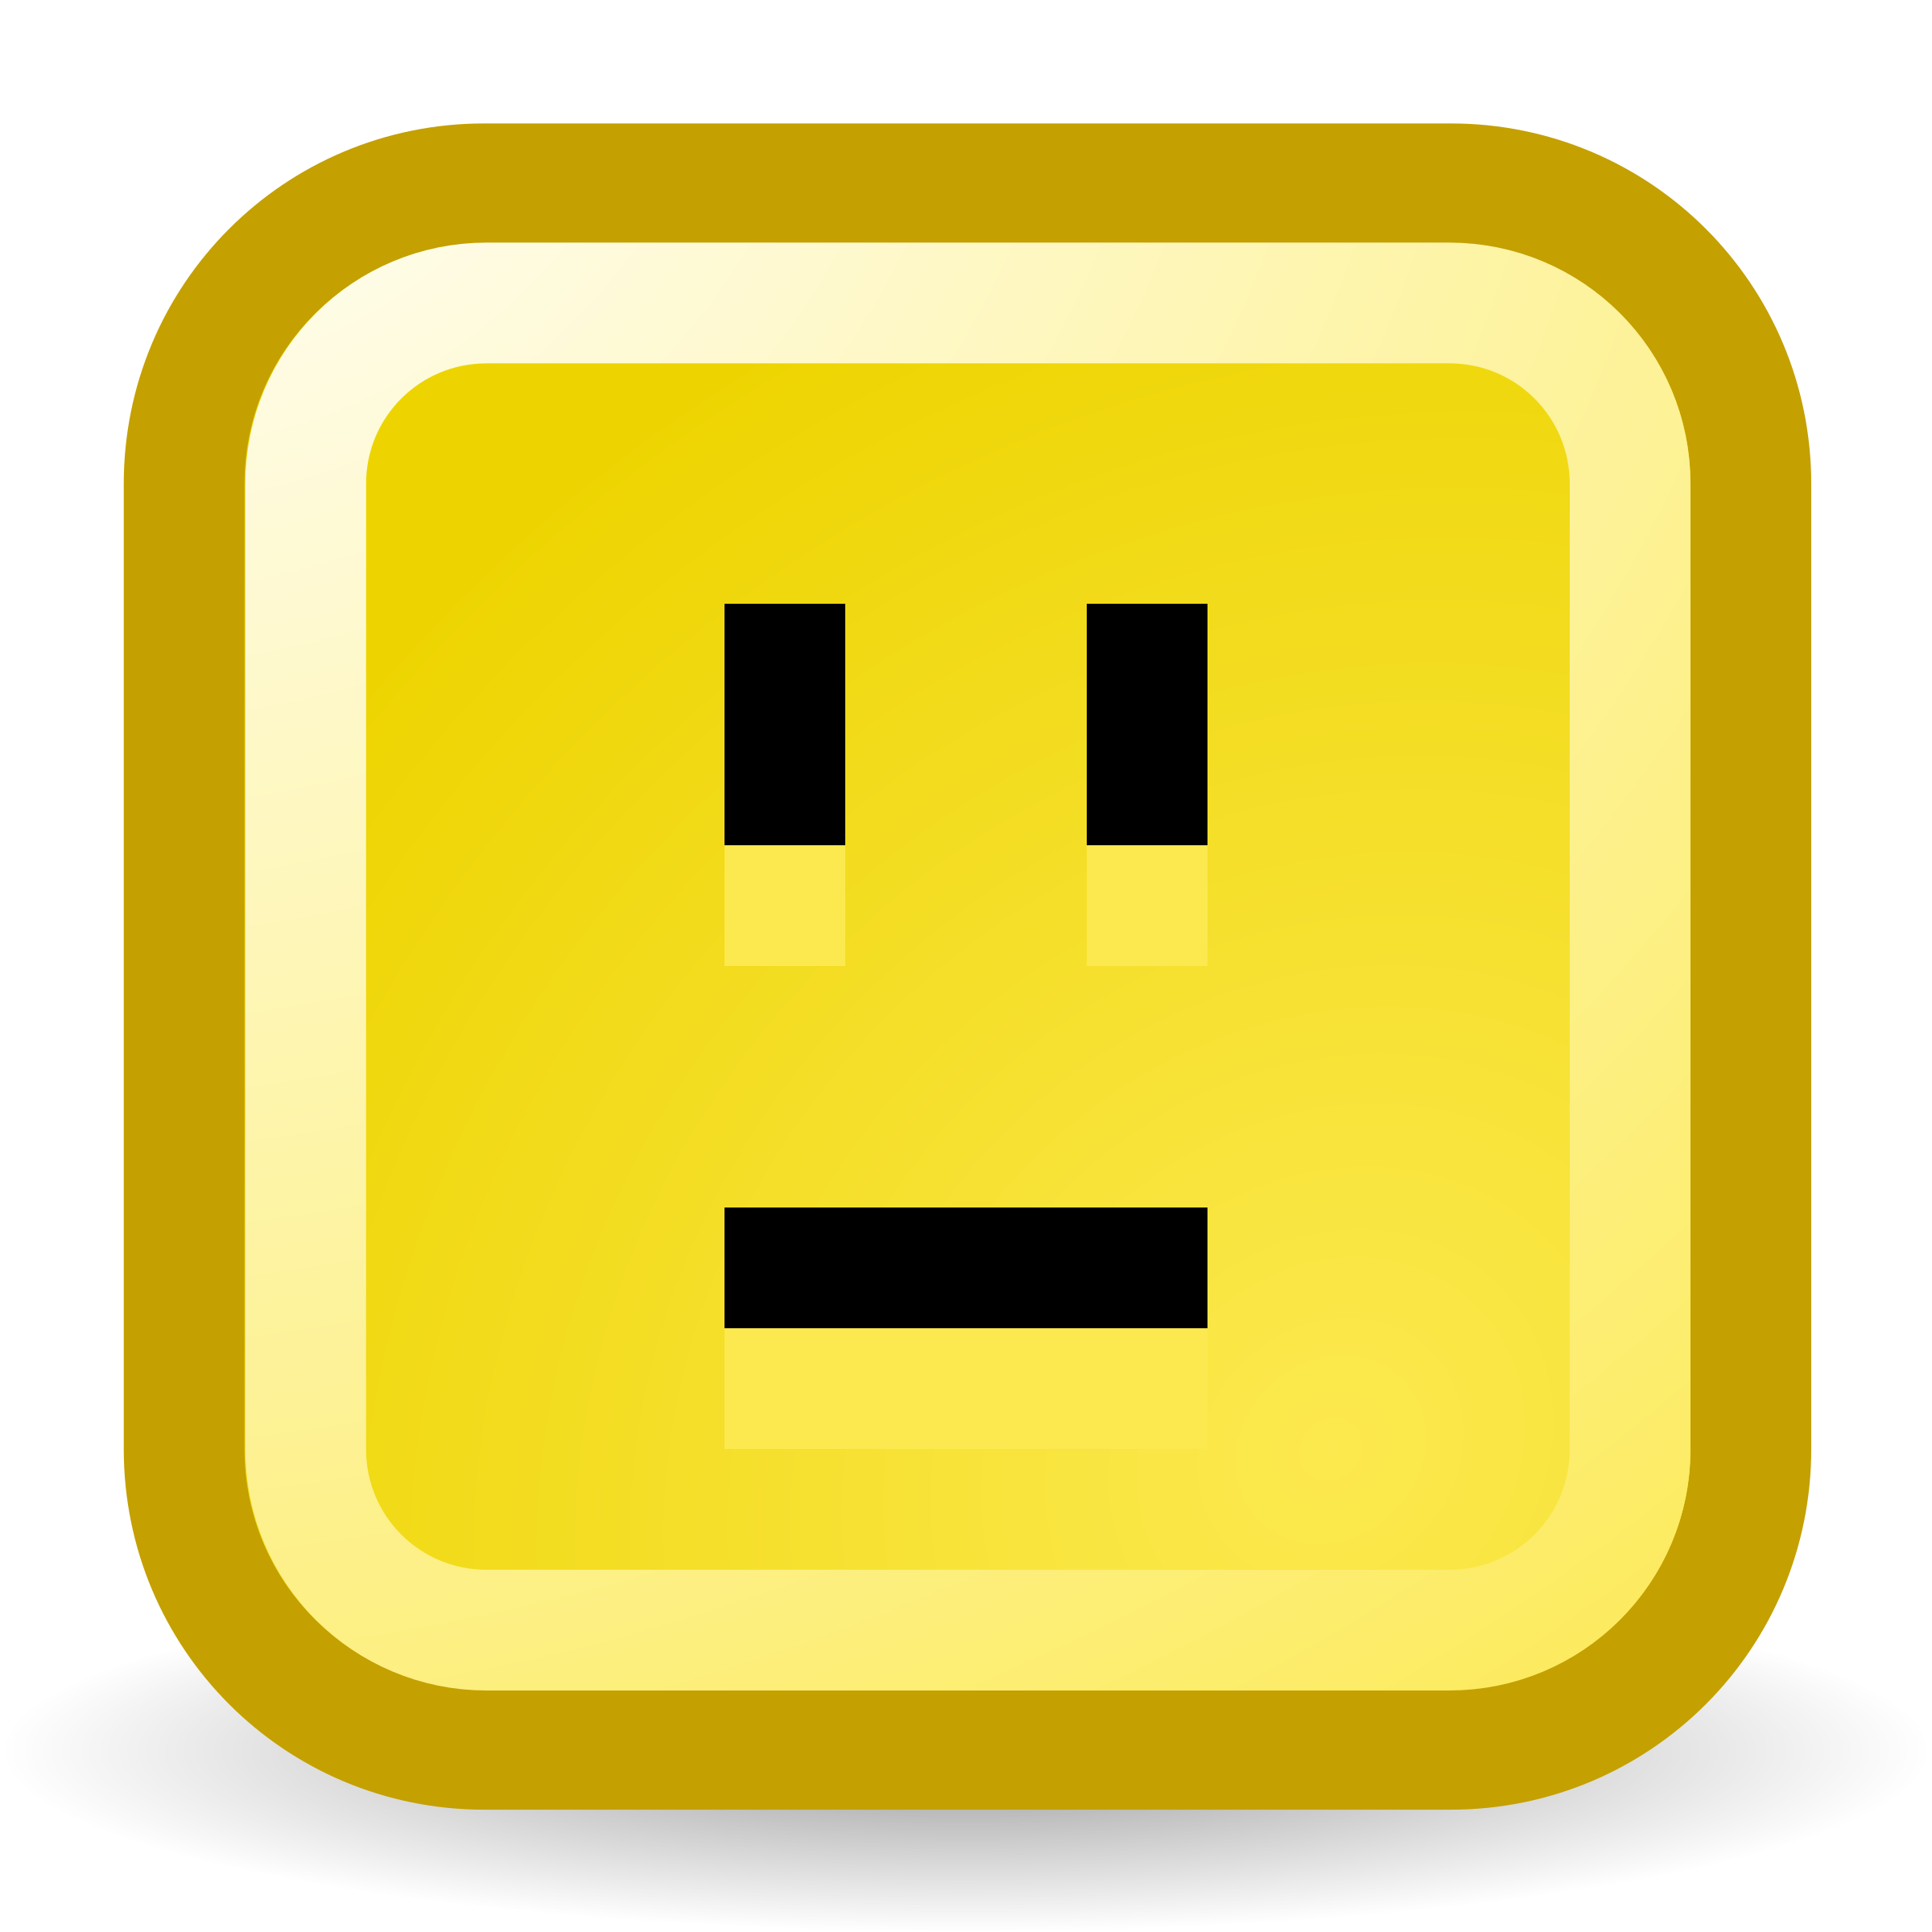 No smile icon by qubodup